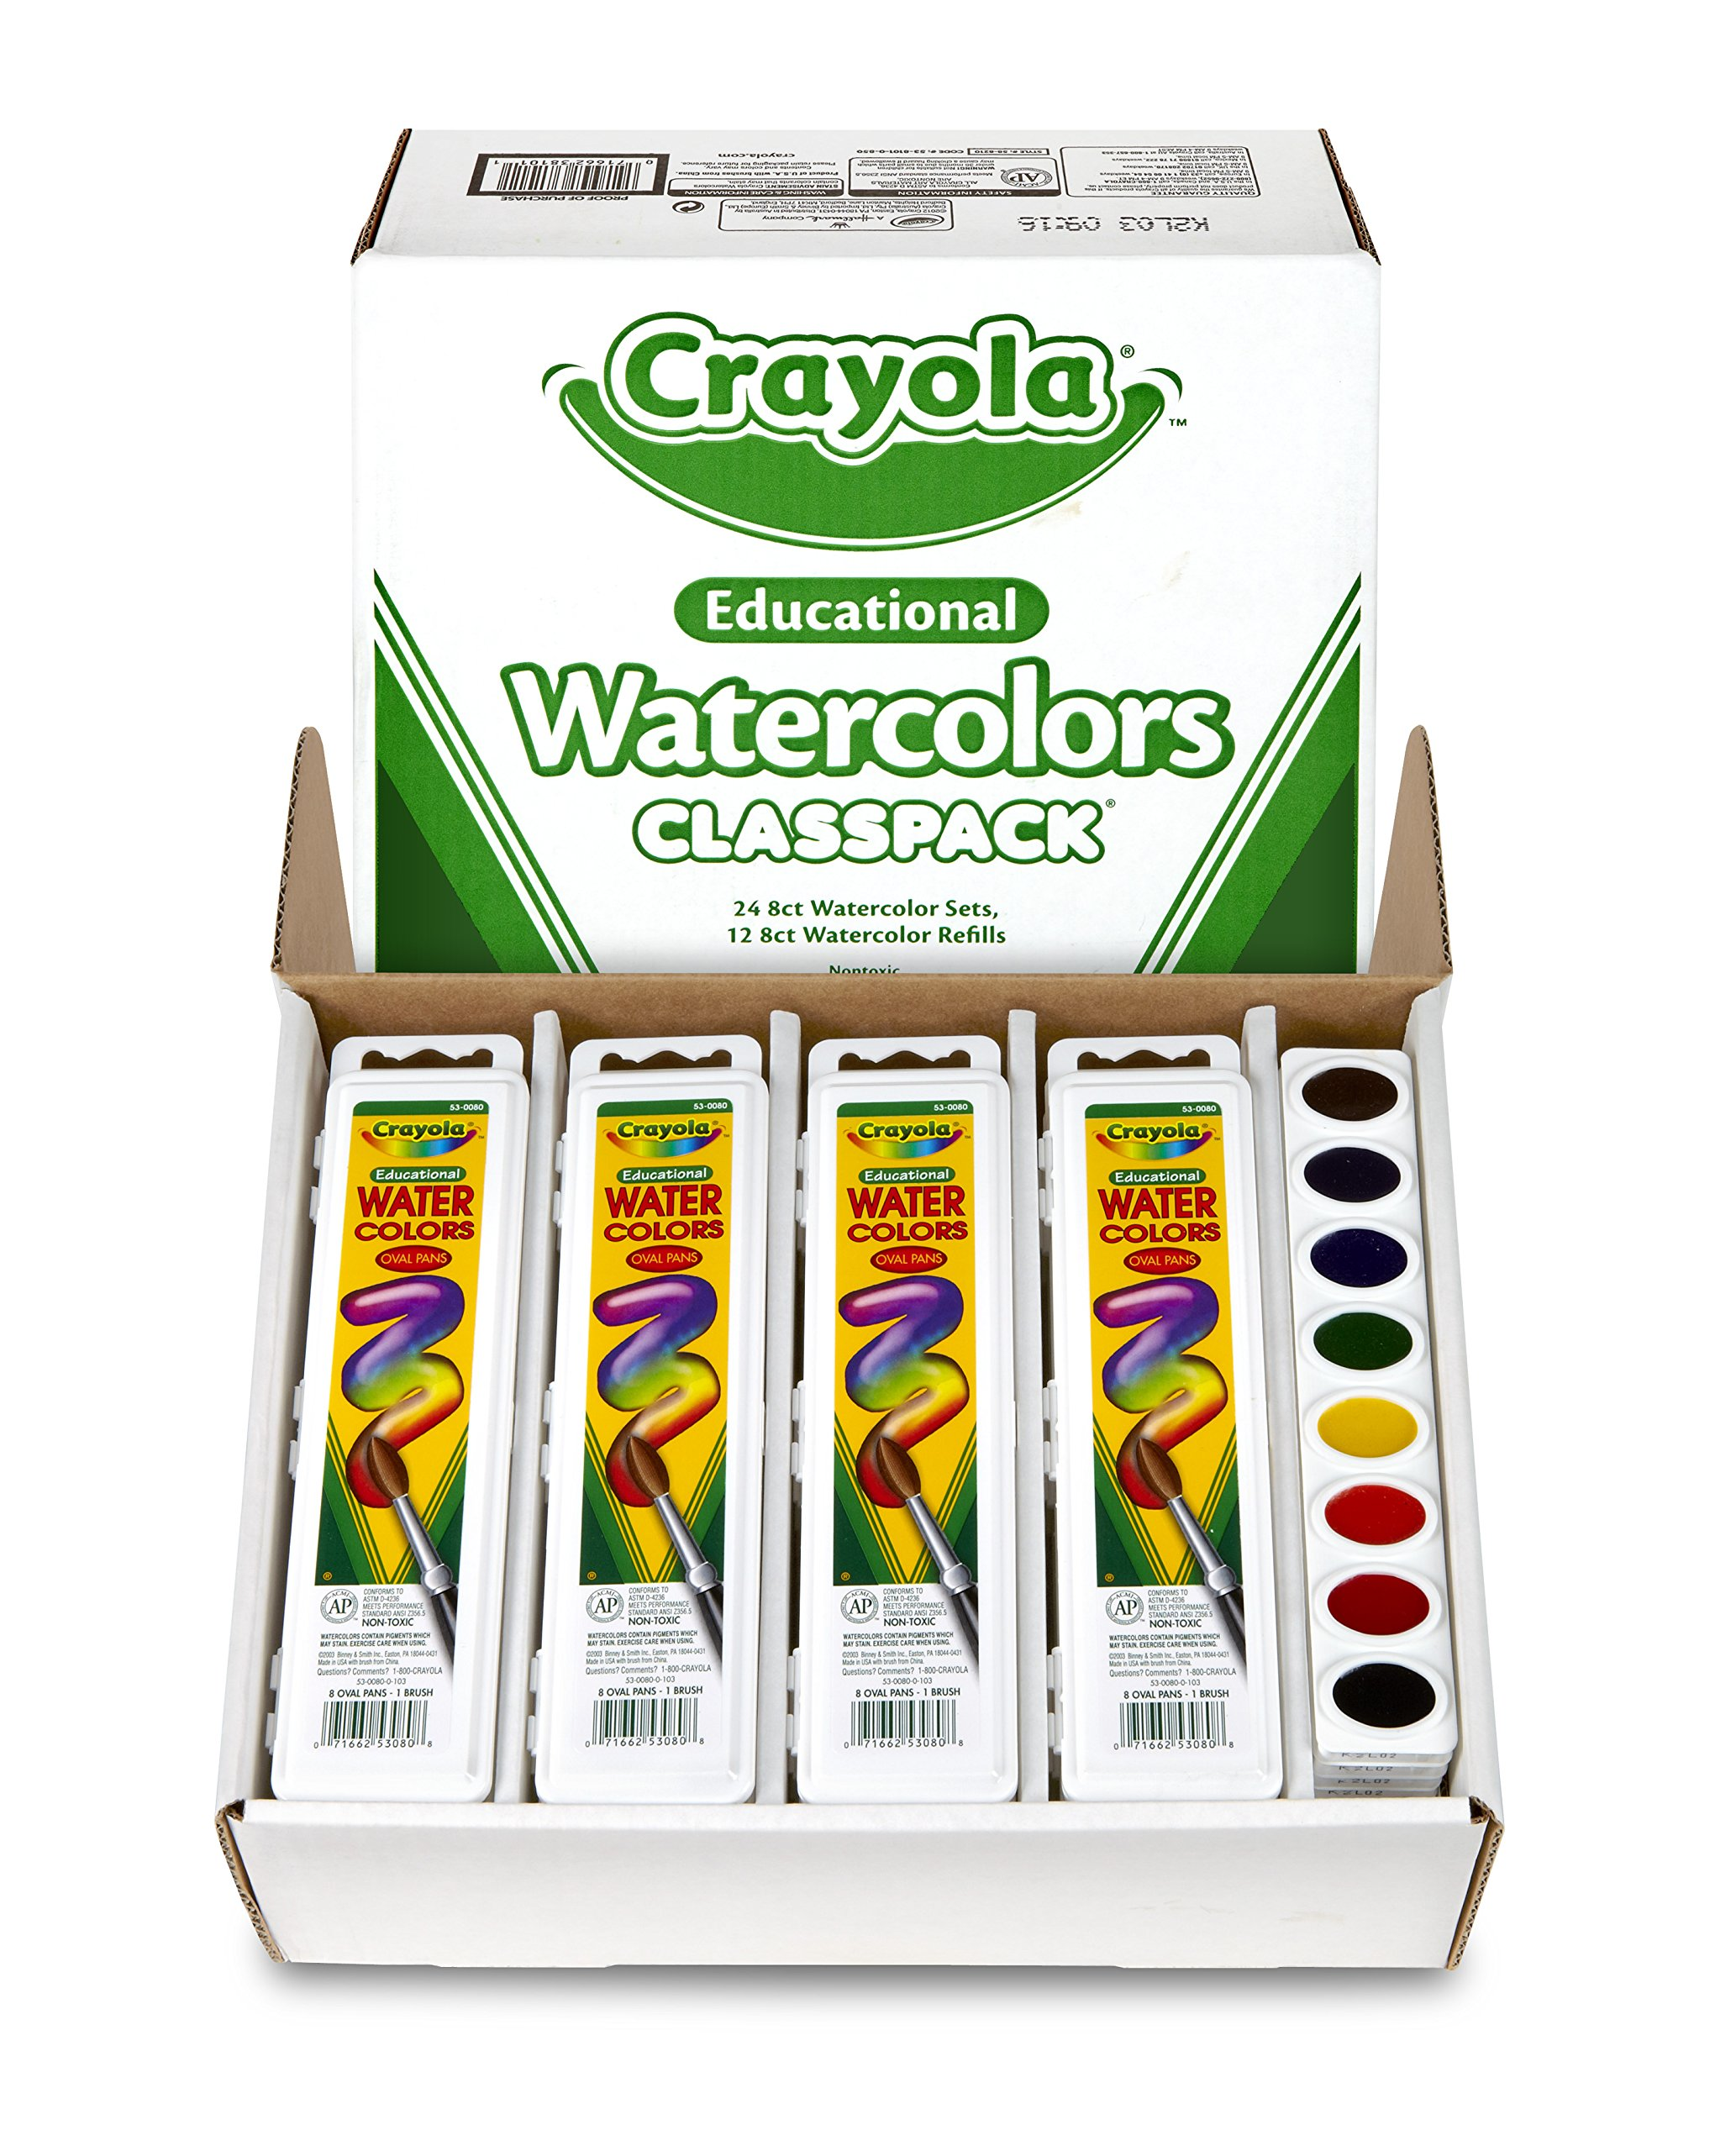 Crayola Educational Watercolors Classpack by Crayola (Image #4)